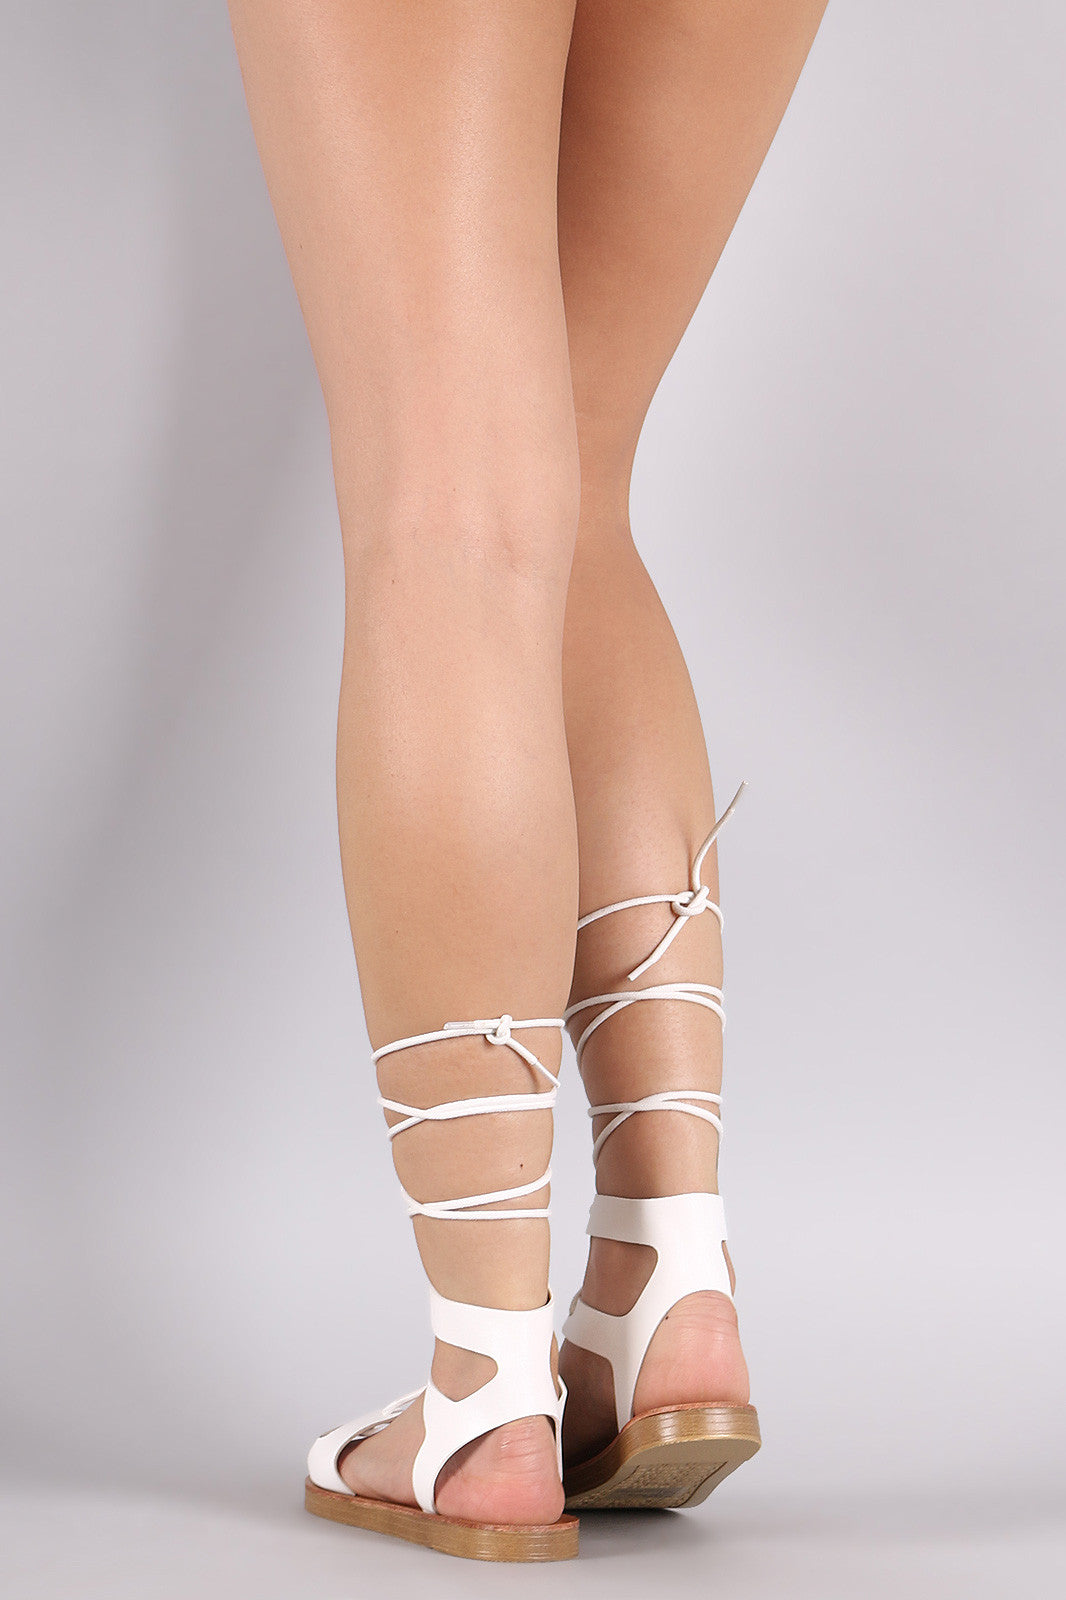 Breckelle Strappy Lace-Up Gladiator Flat Sandal - Thick 'N' Curvy Shop - 9